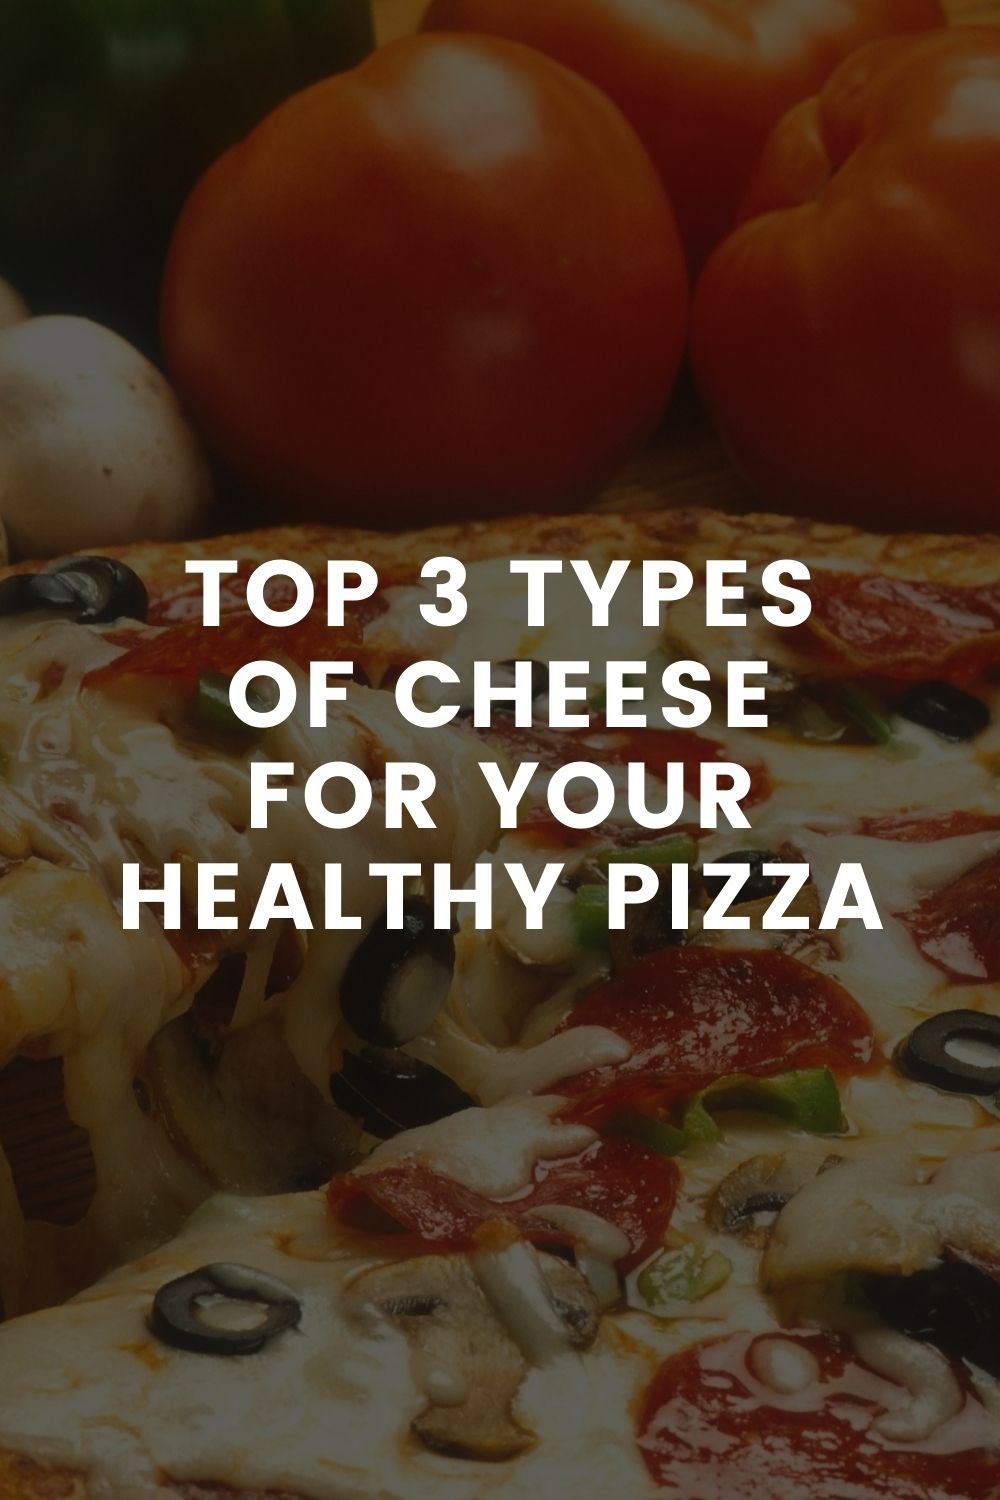 Top 3 Types of Cheese for Your Healthy Pizza